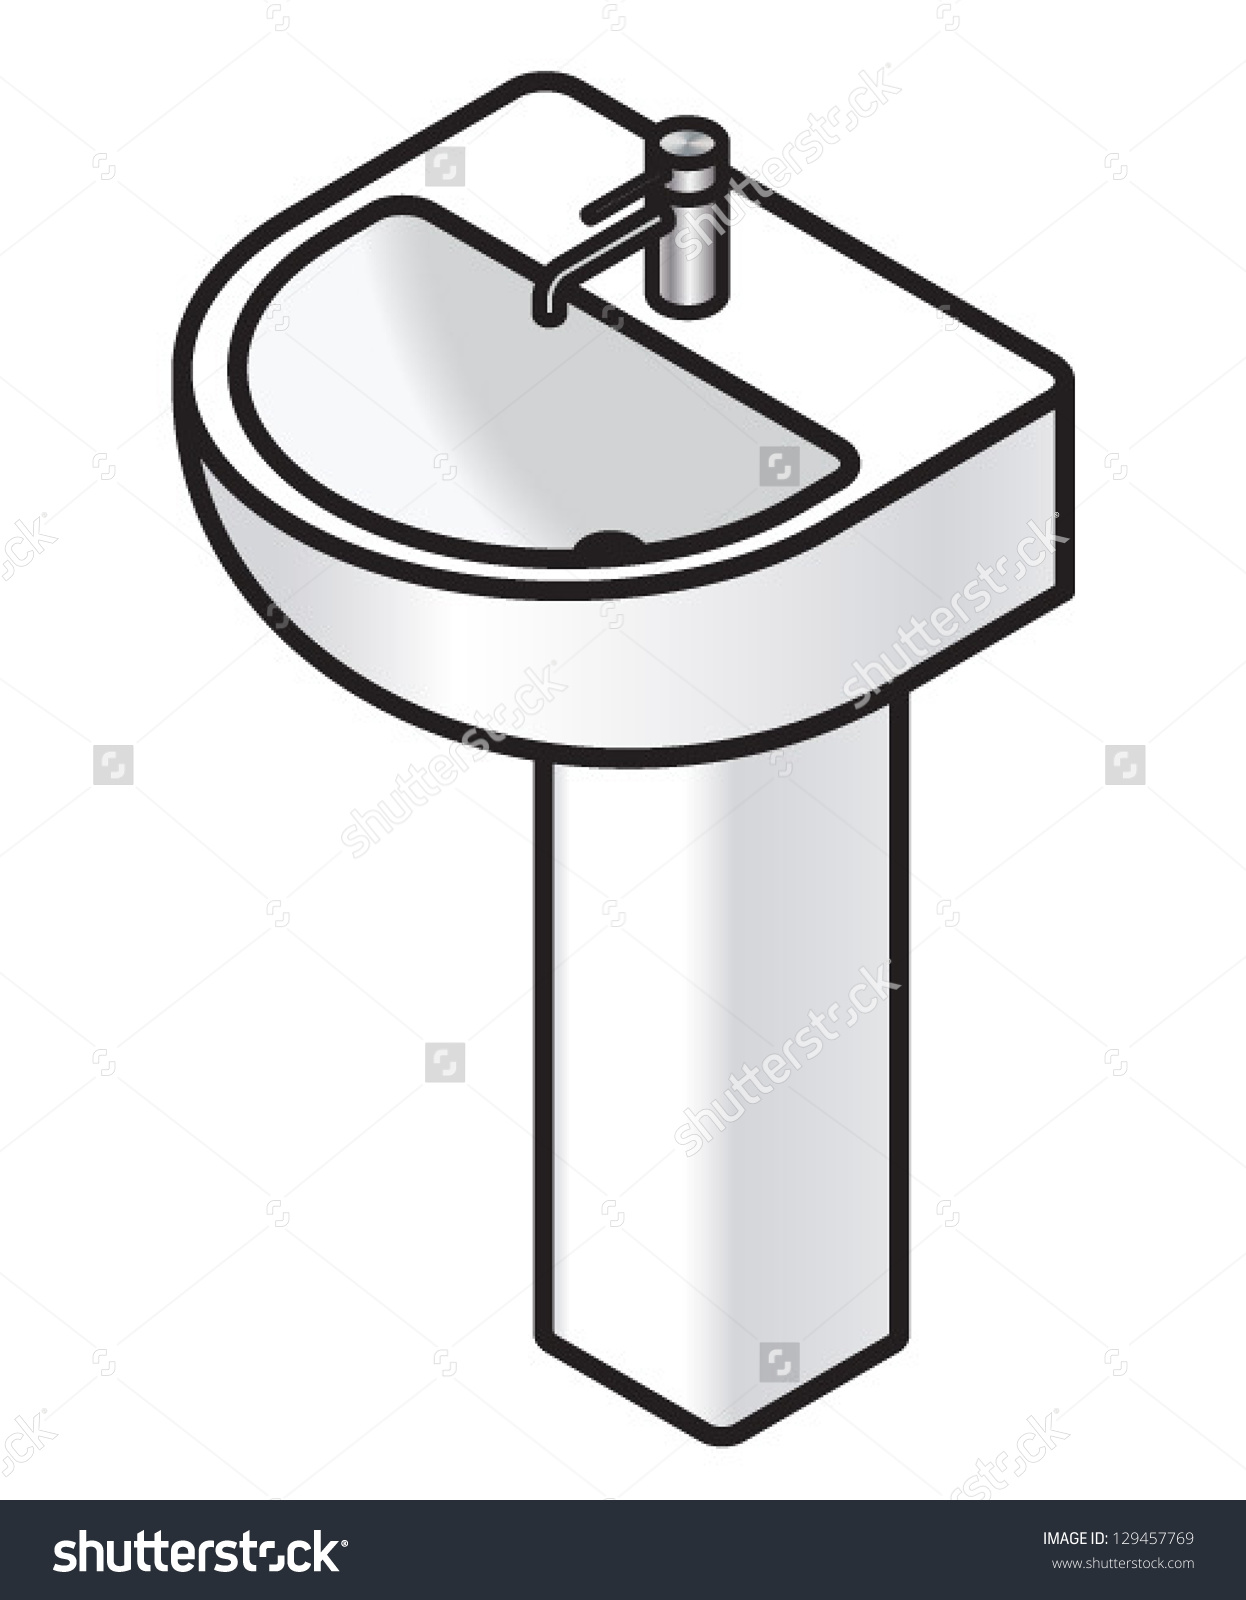 Sink clipart black and white 2 » Clipart Station.